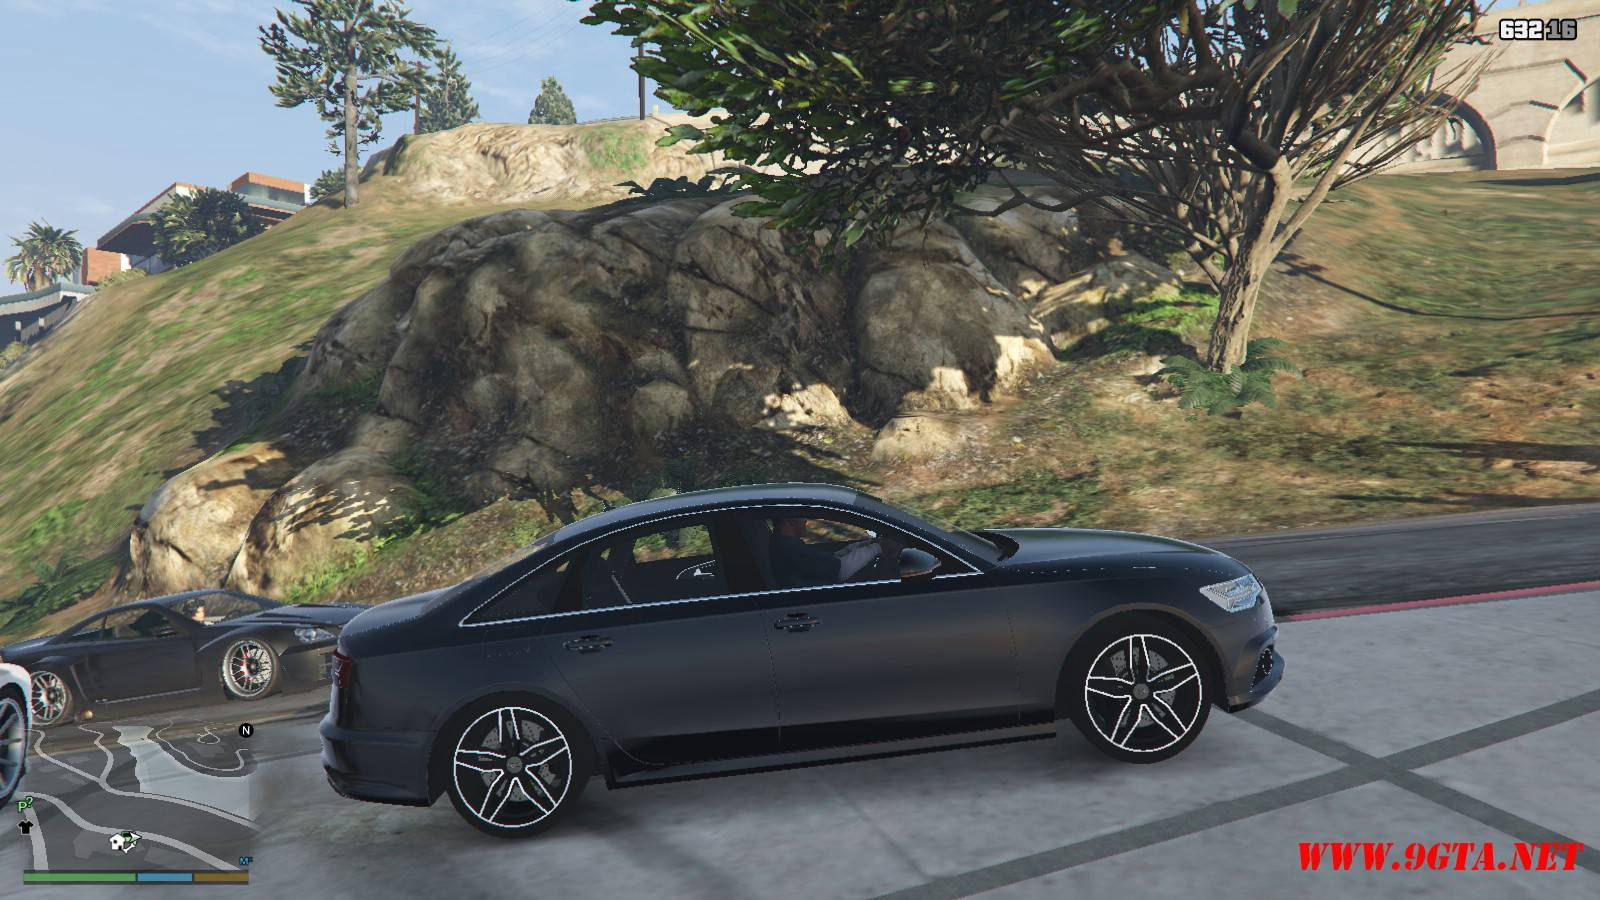 Audi A6 Mod For GTA5 (9)